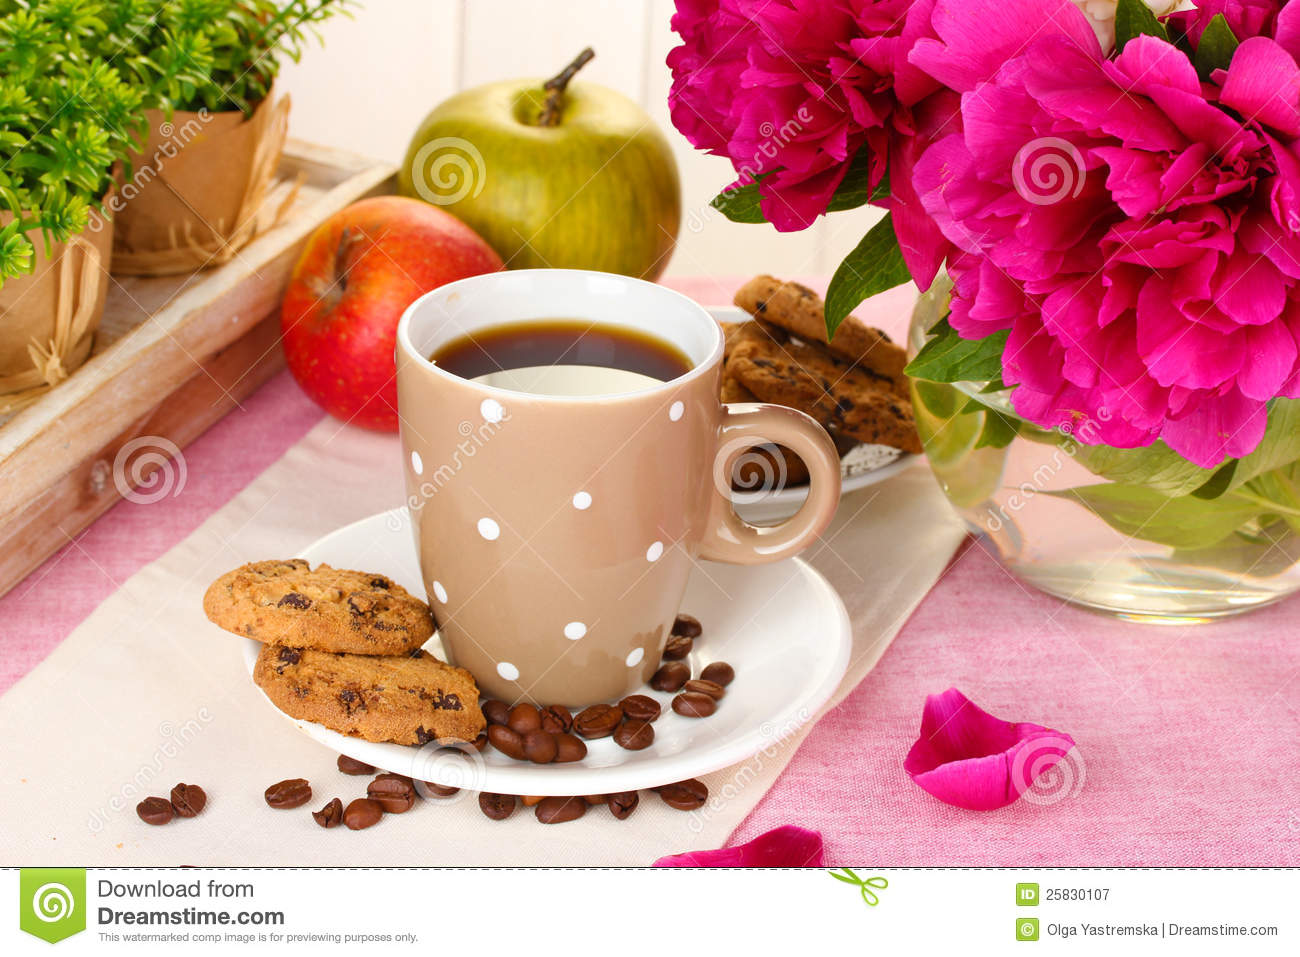 Royalty Free Stock Photography: Cup of coffee, cookies, apples and ...